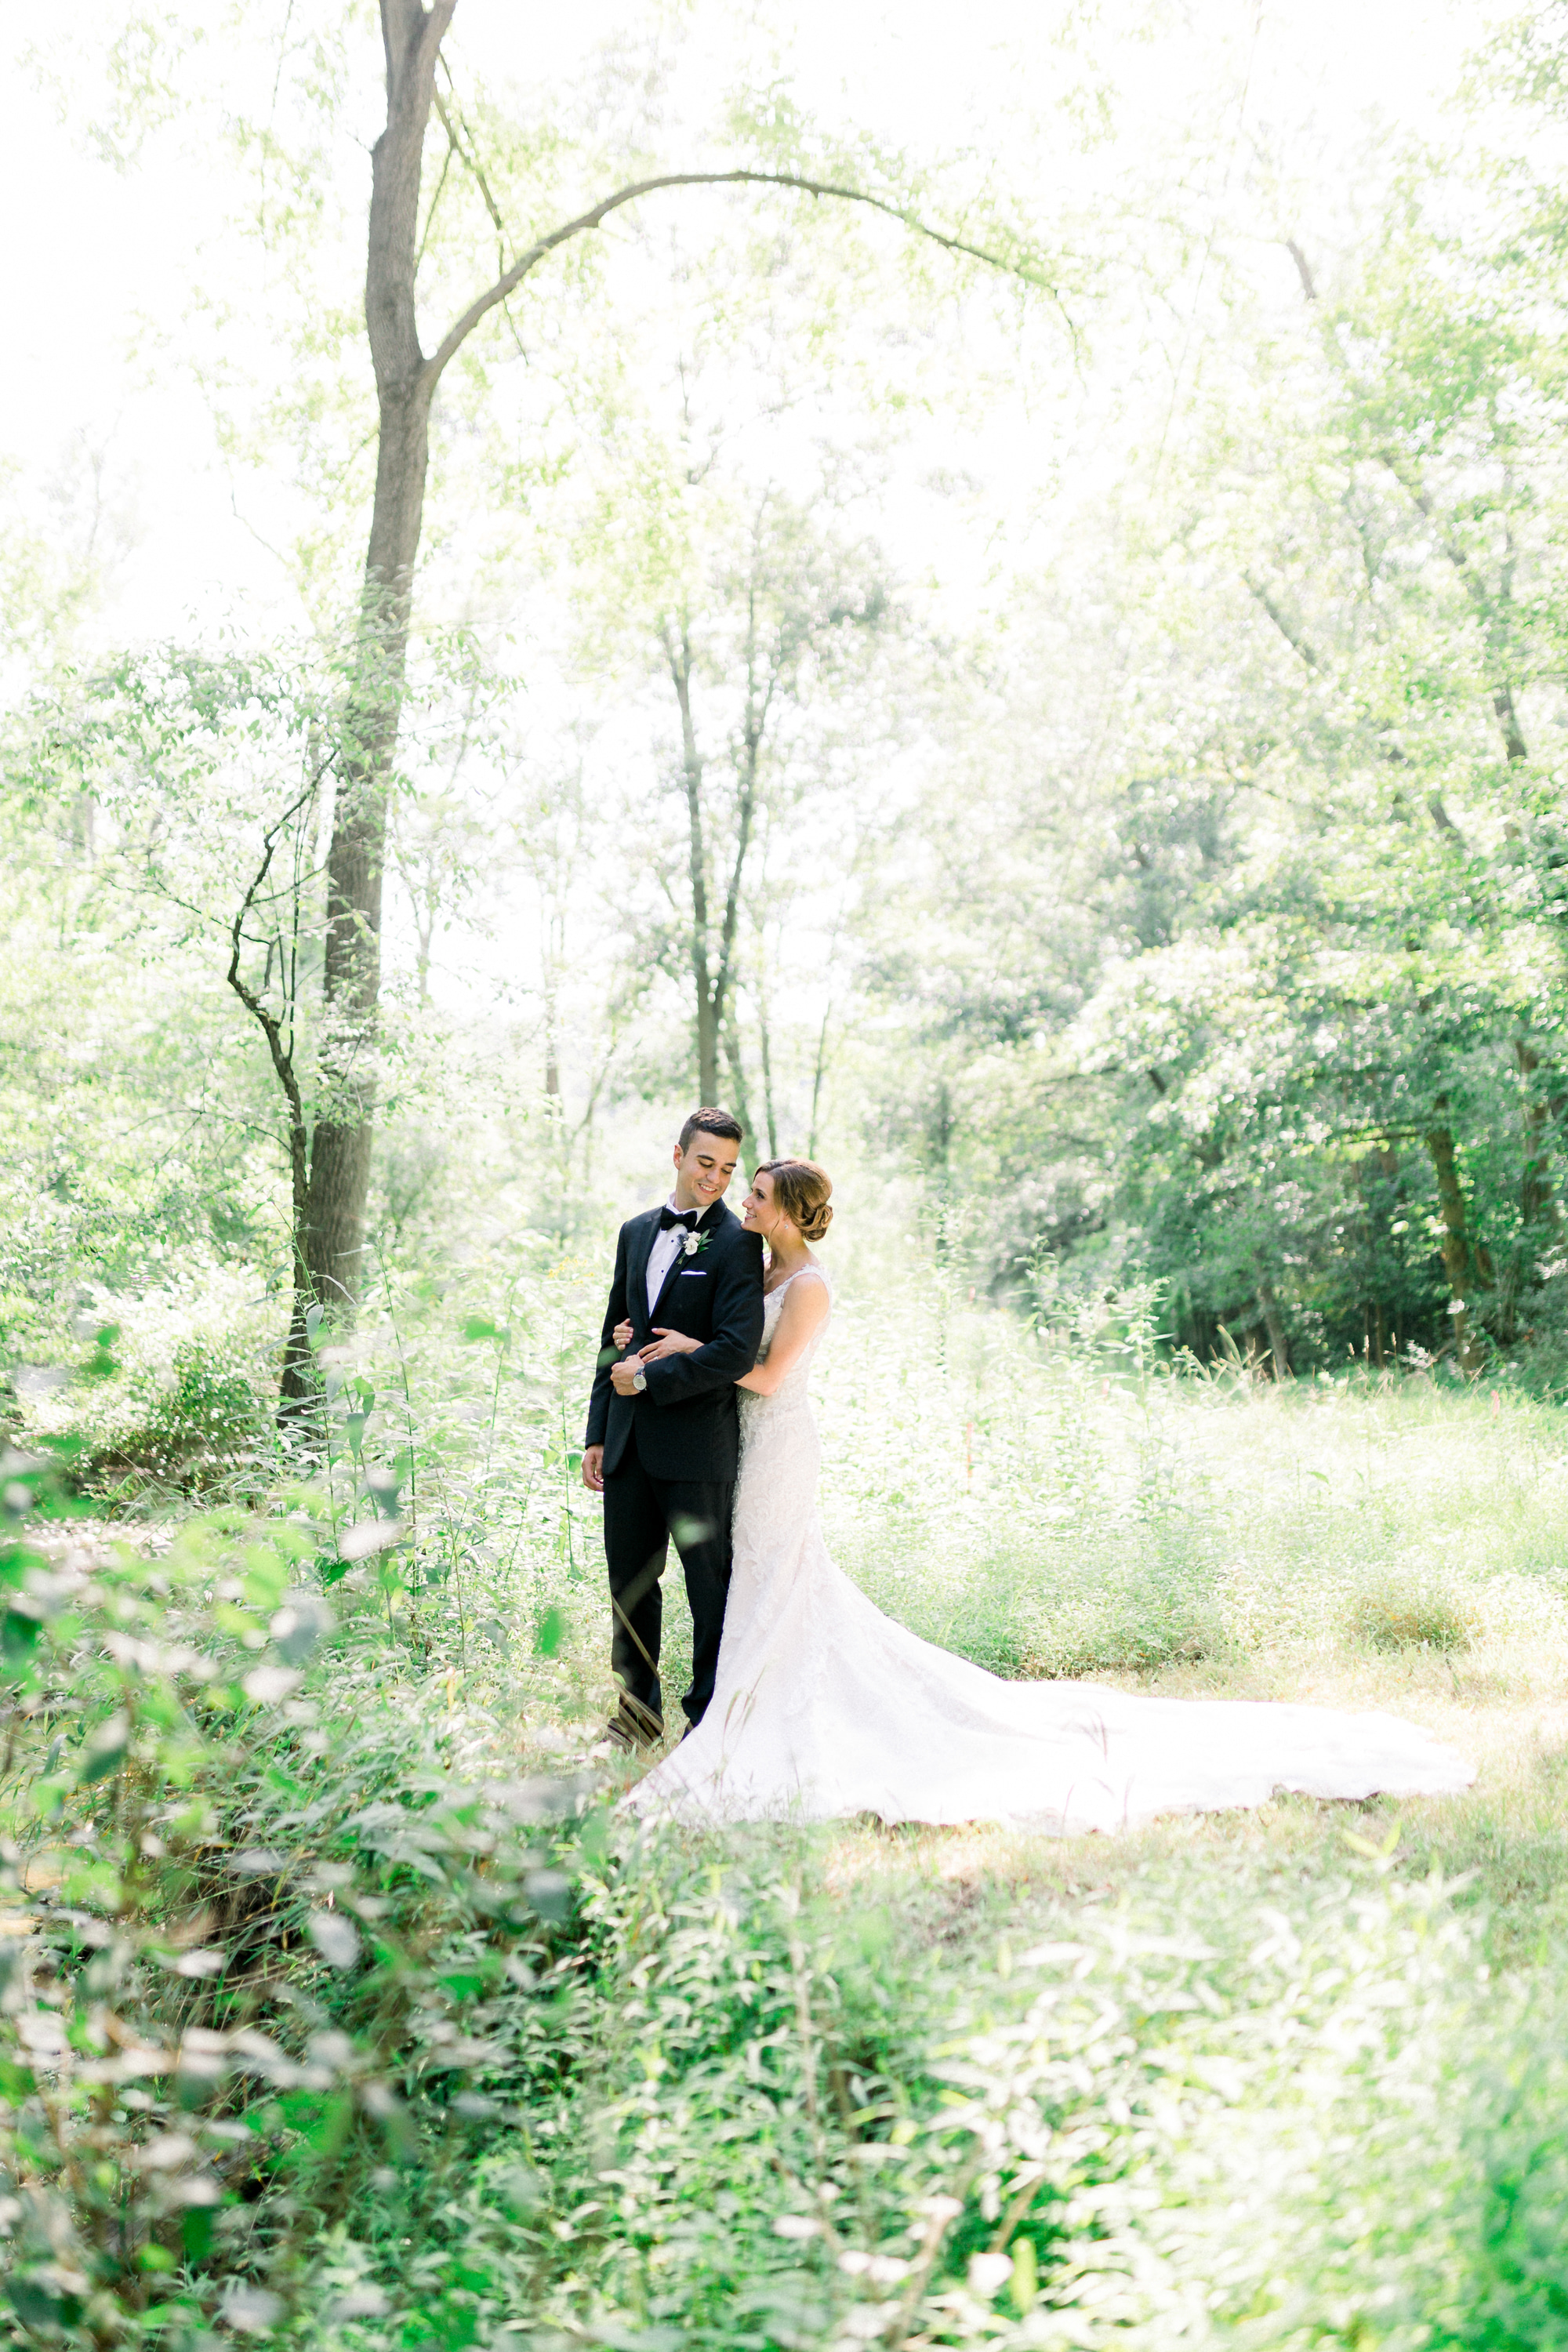 Simple elegance wedding - Bride and groom take first look photos at simple and woodsy Pittsburgh wedding planned by Exhale Events. Find more wedding inspiration at exhale-events.com Pittbsurgh Wedding Planners